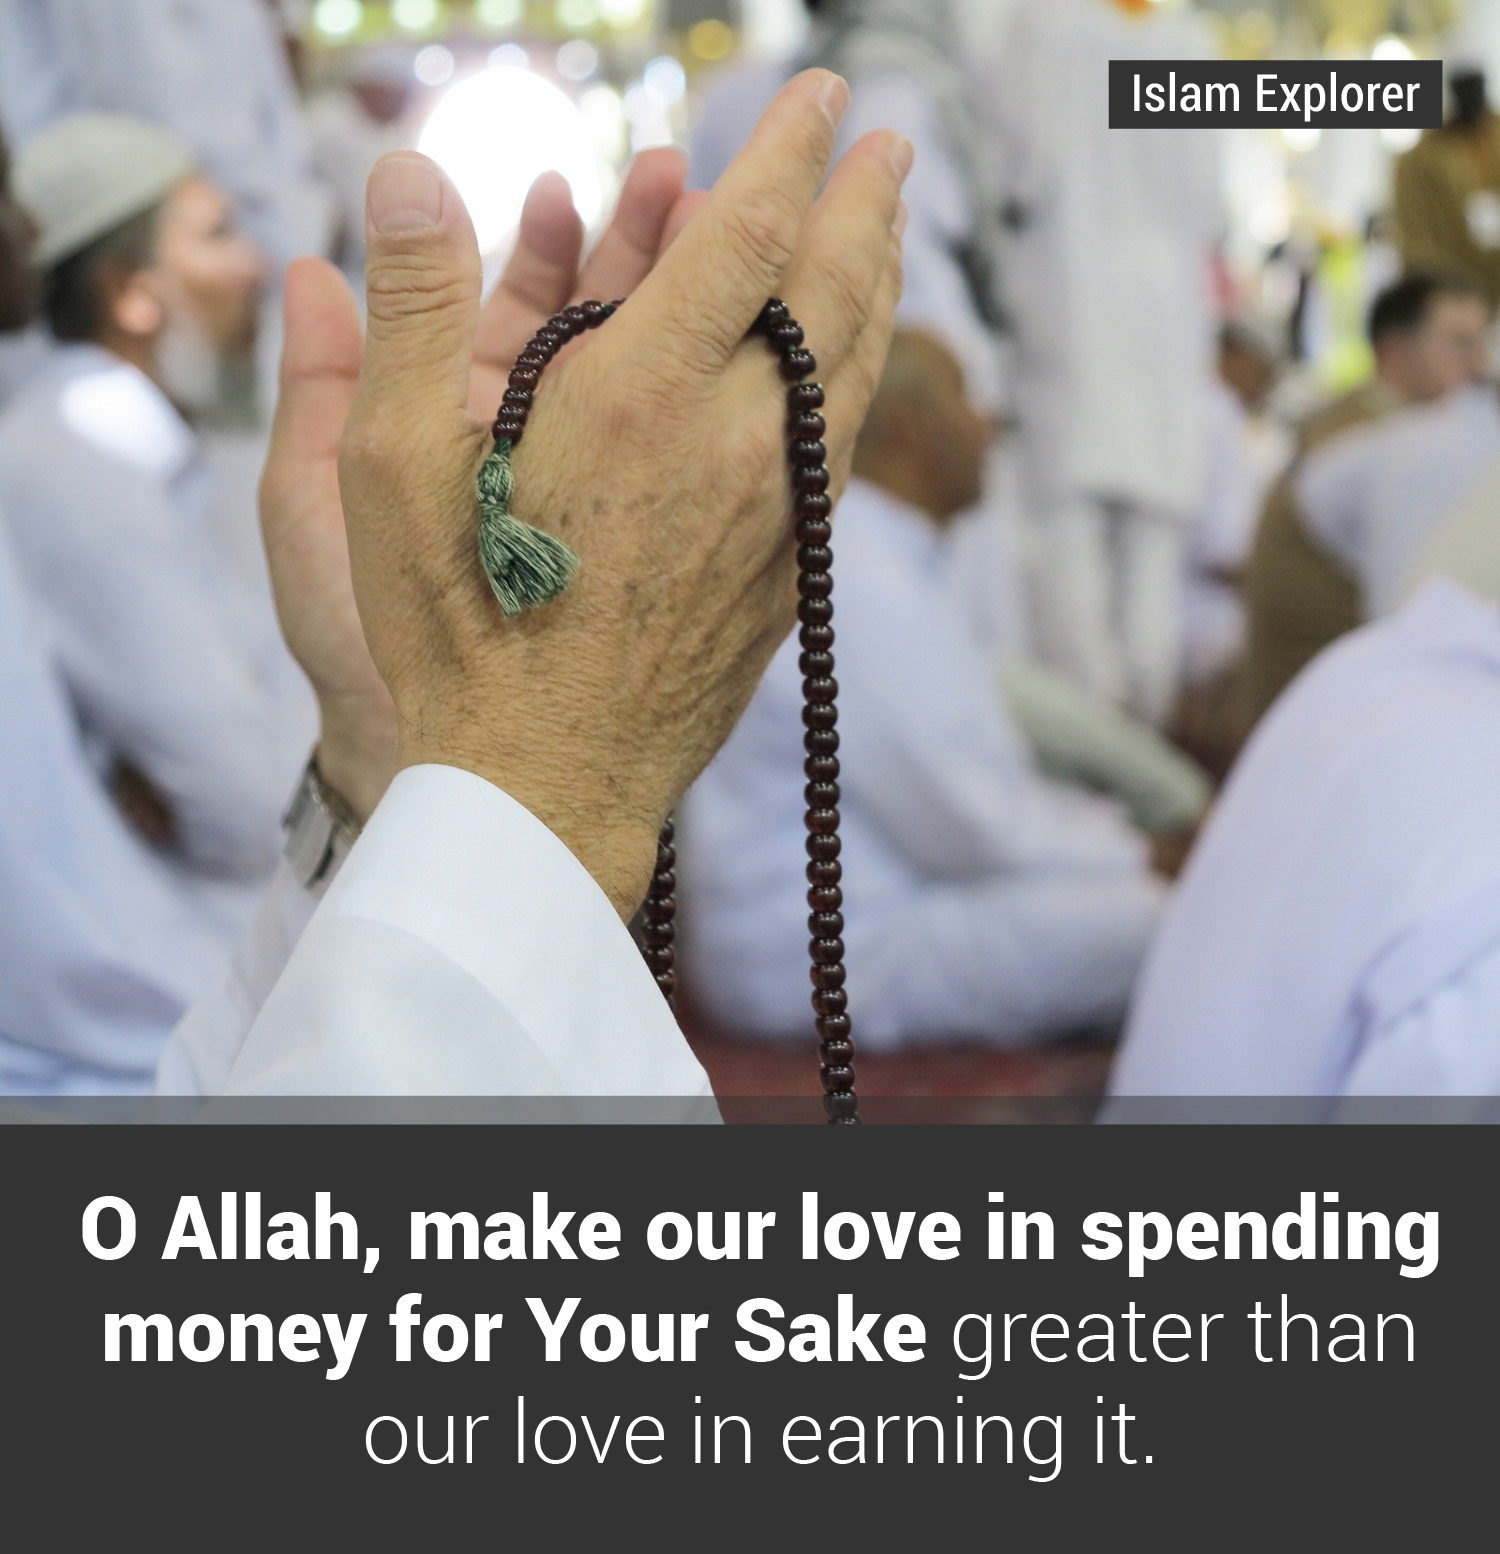 O Allah, make our love in spending money for Your Sake greater than our love in earning it.